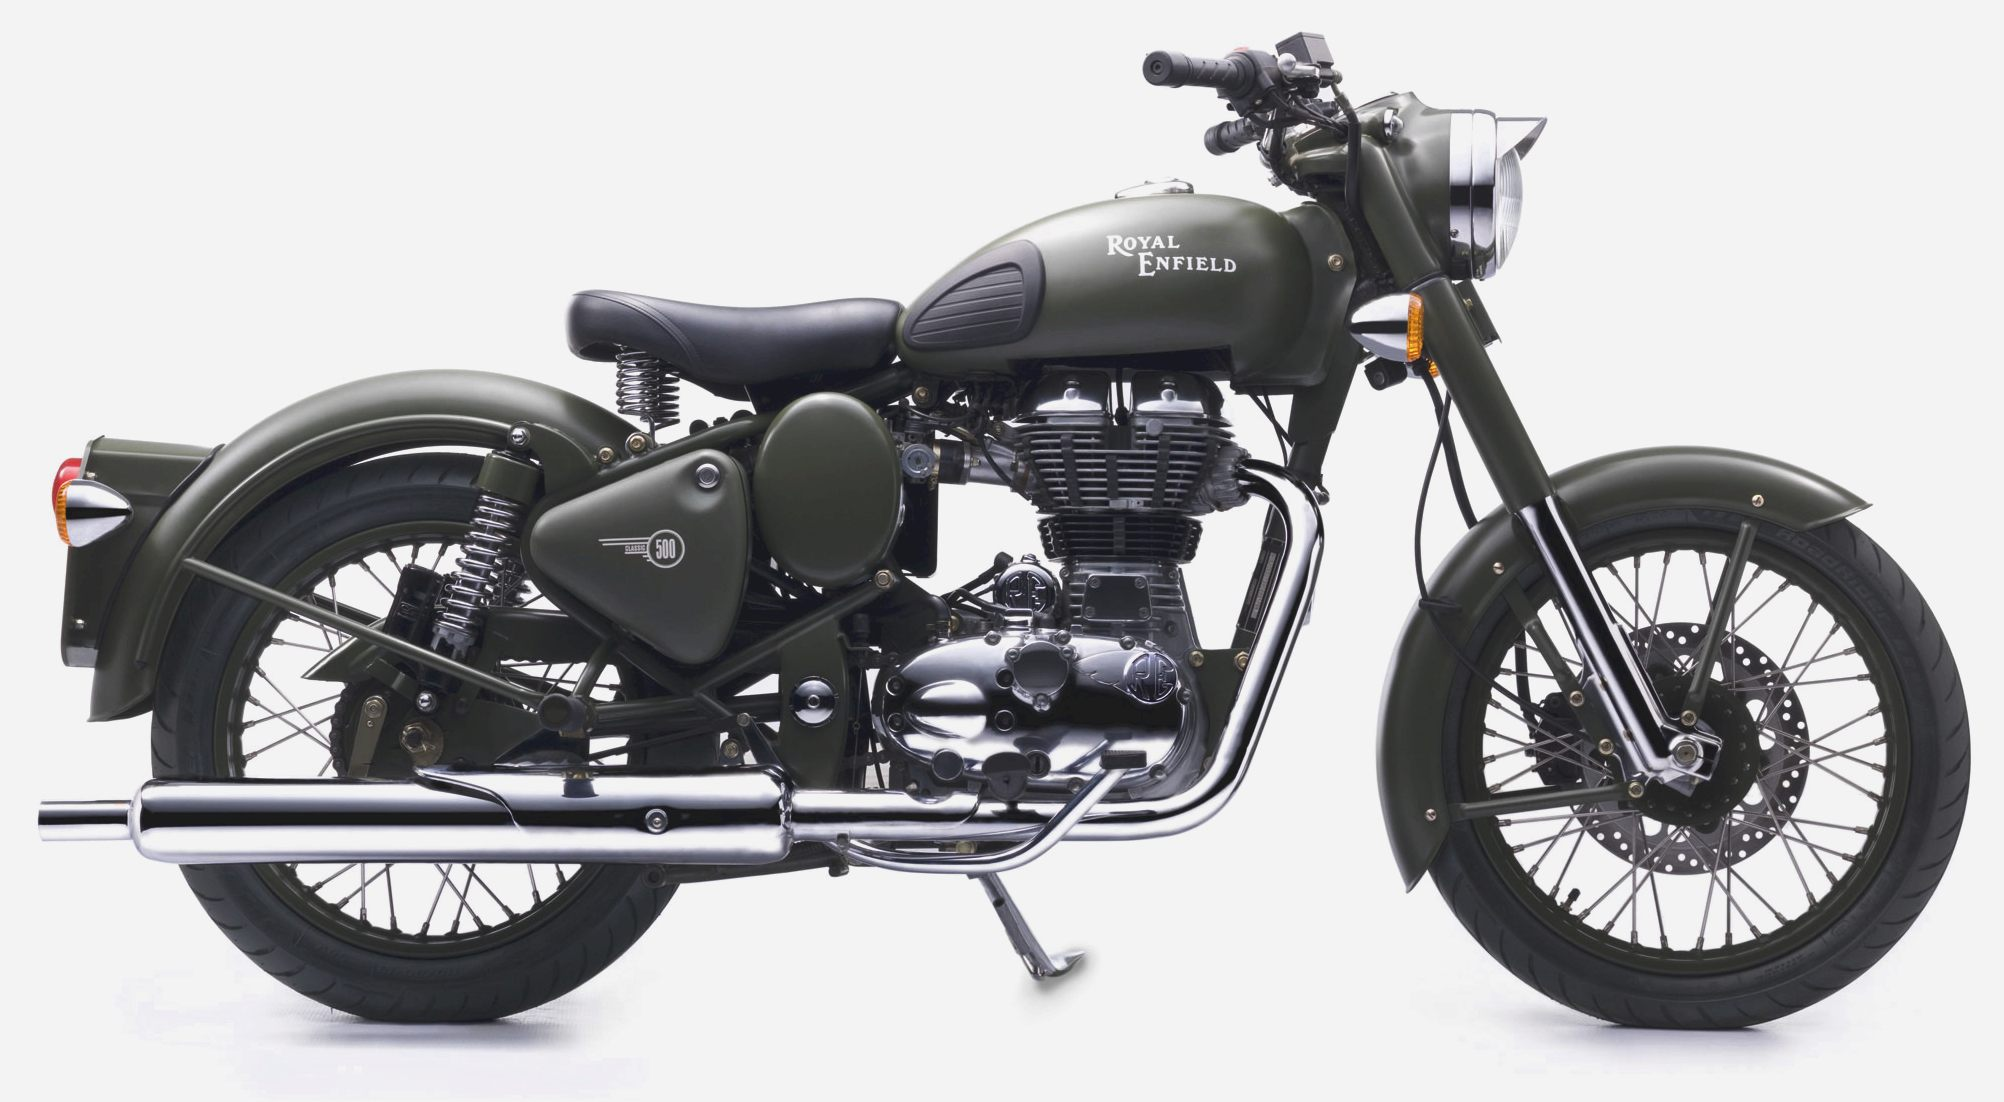 Royal Enfield Bullet 500 Army 1997 images #158644